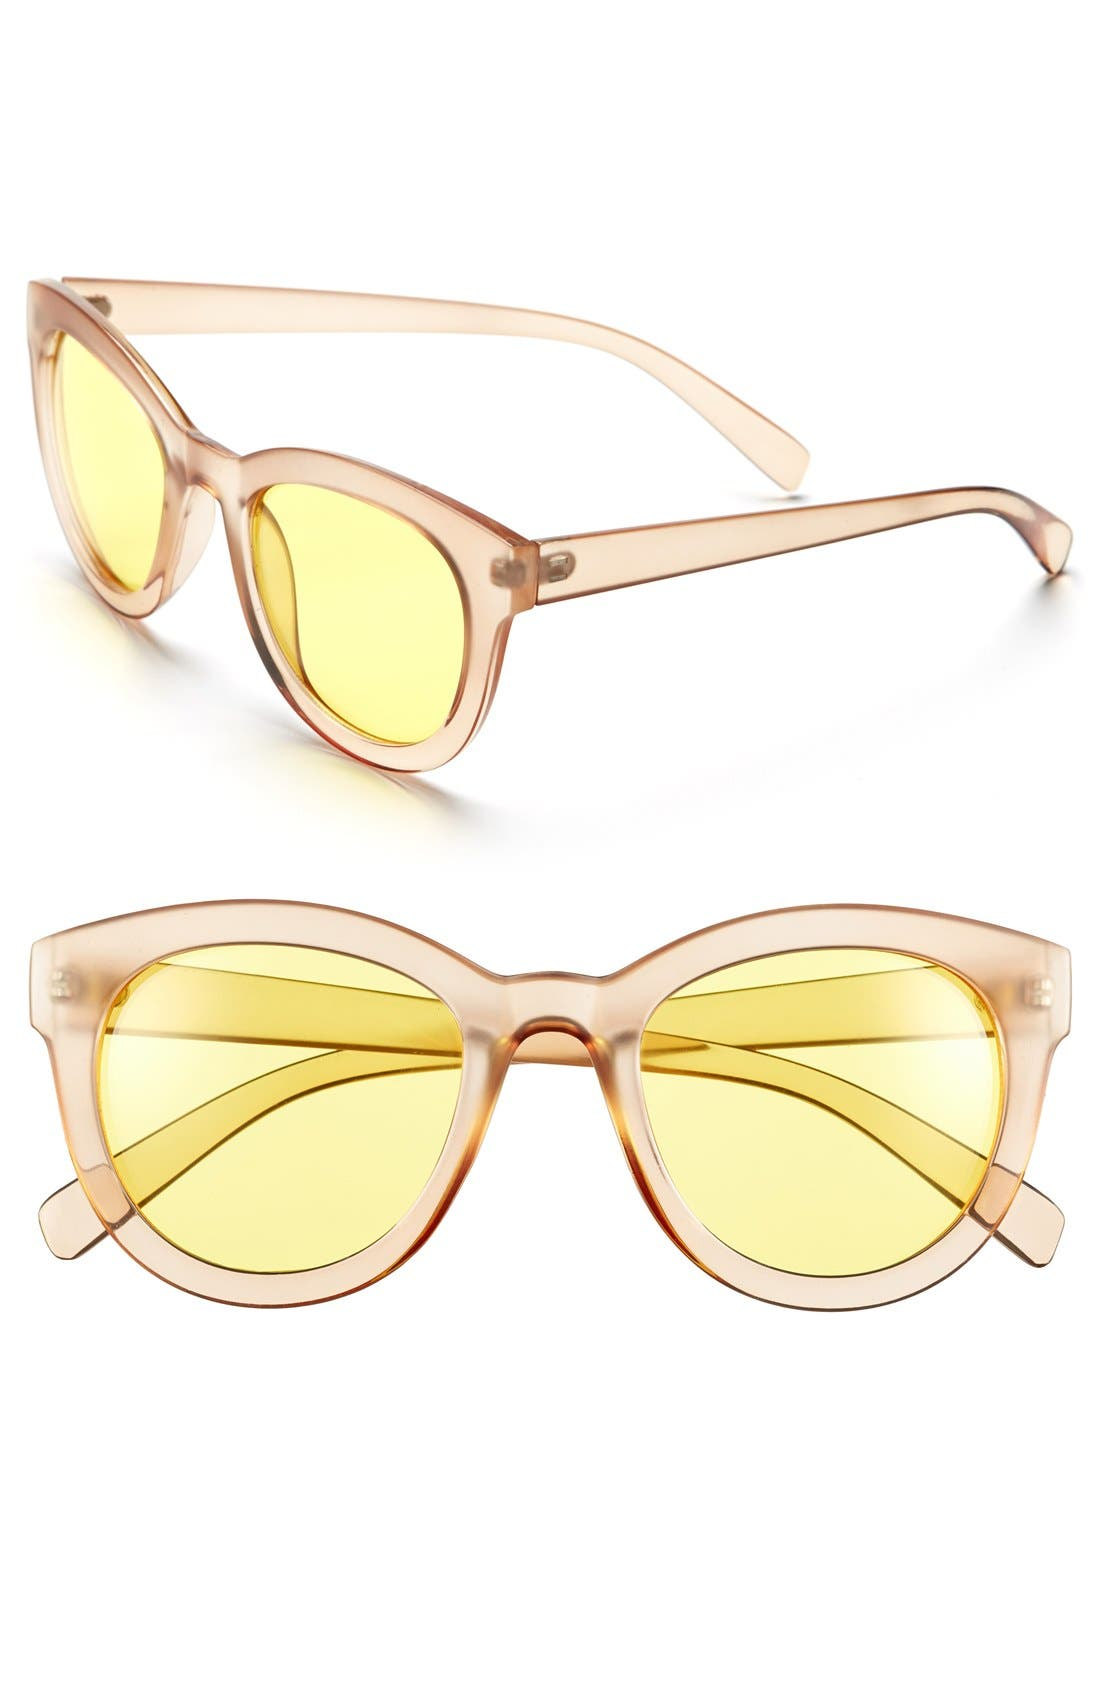 Main Image - FE NY 51mm Sunglasses